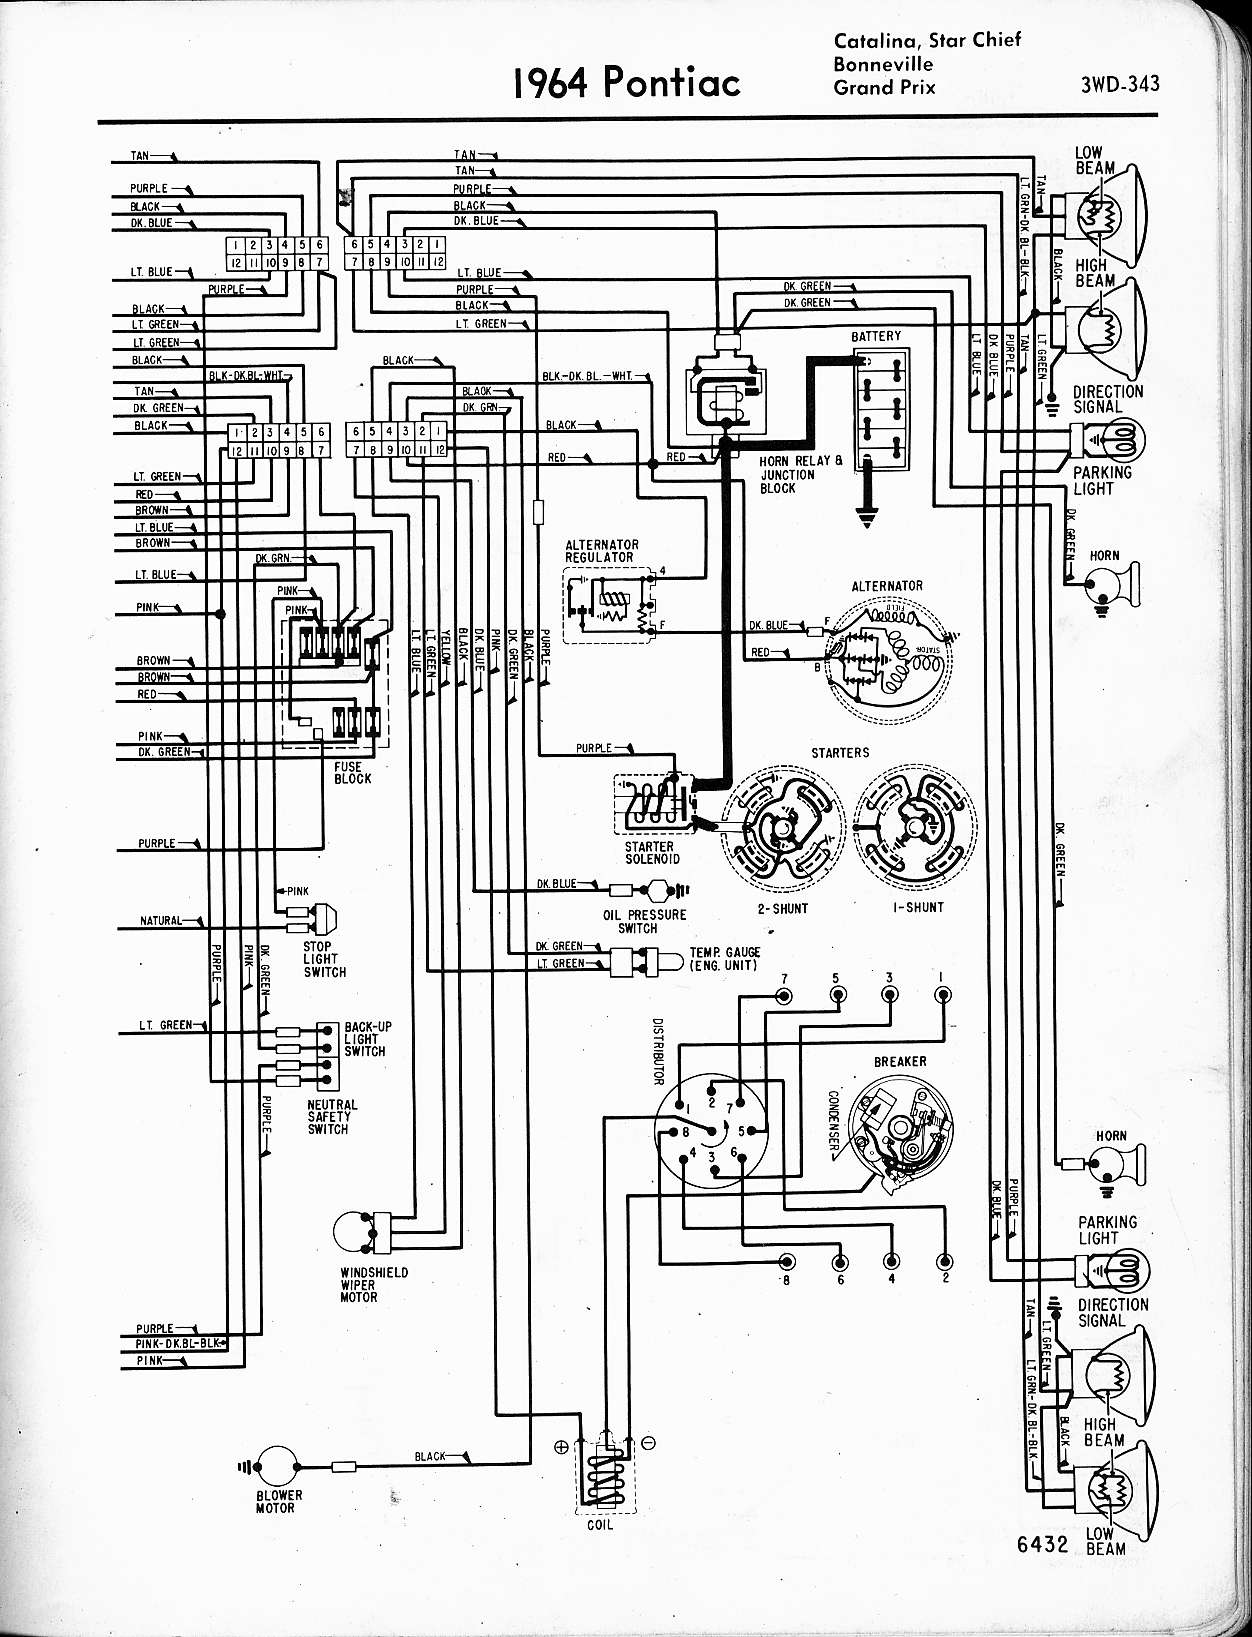 1967 Pontiac Alternator Wiring Diagram Everything About Built In Regulator 67 Camaro 1968 Gto Ignition Switch Best Electrical Circuit Rh Combiensacoute Com 1969 Dash